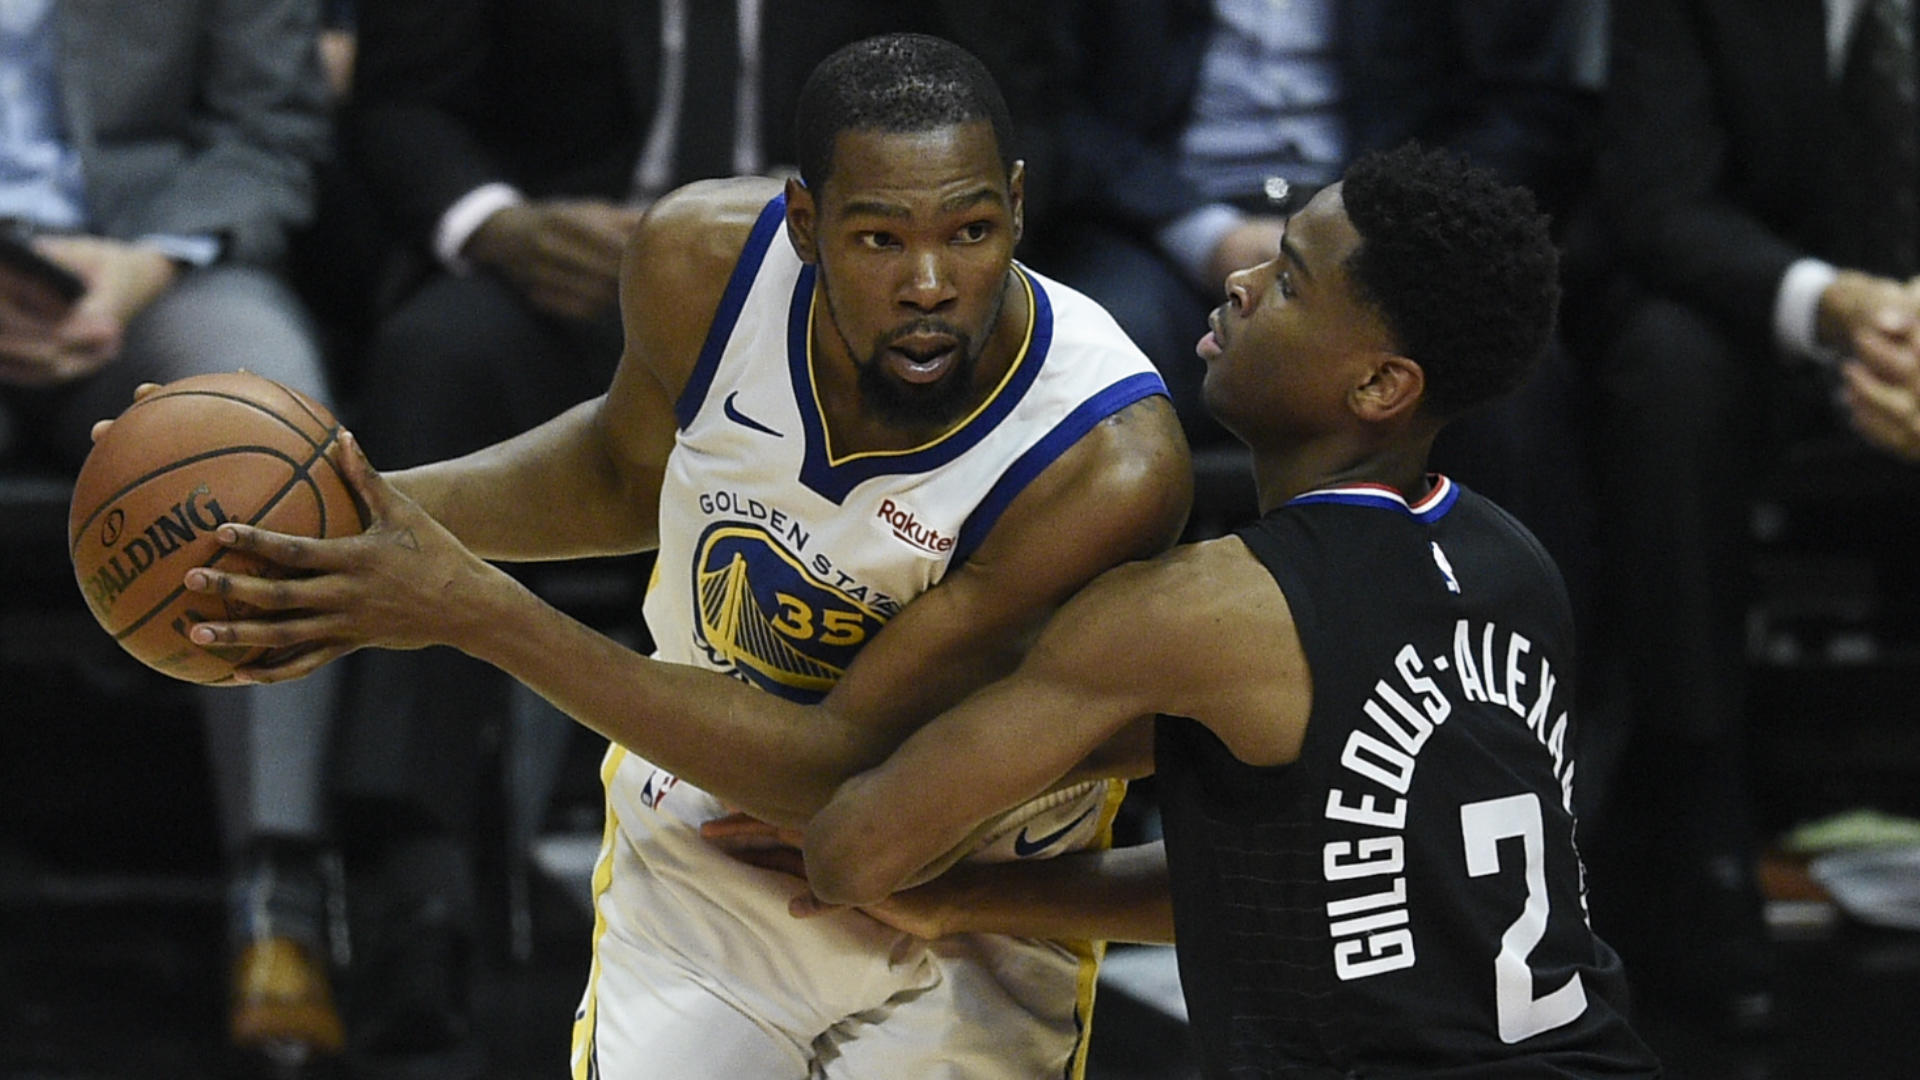 2019 NBA Playoffs: Watch Warriors vs. Clippers Game 4, series schedule, results, online stream, TV channel, odds, matchups